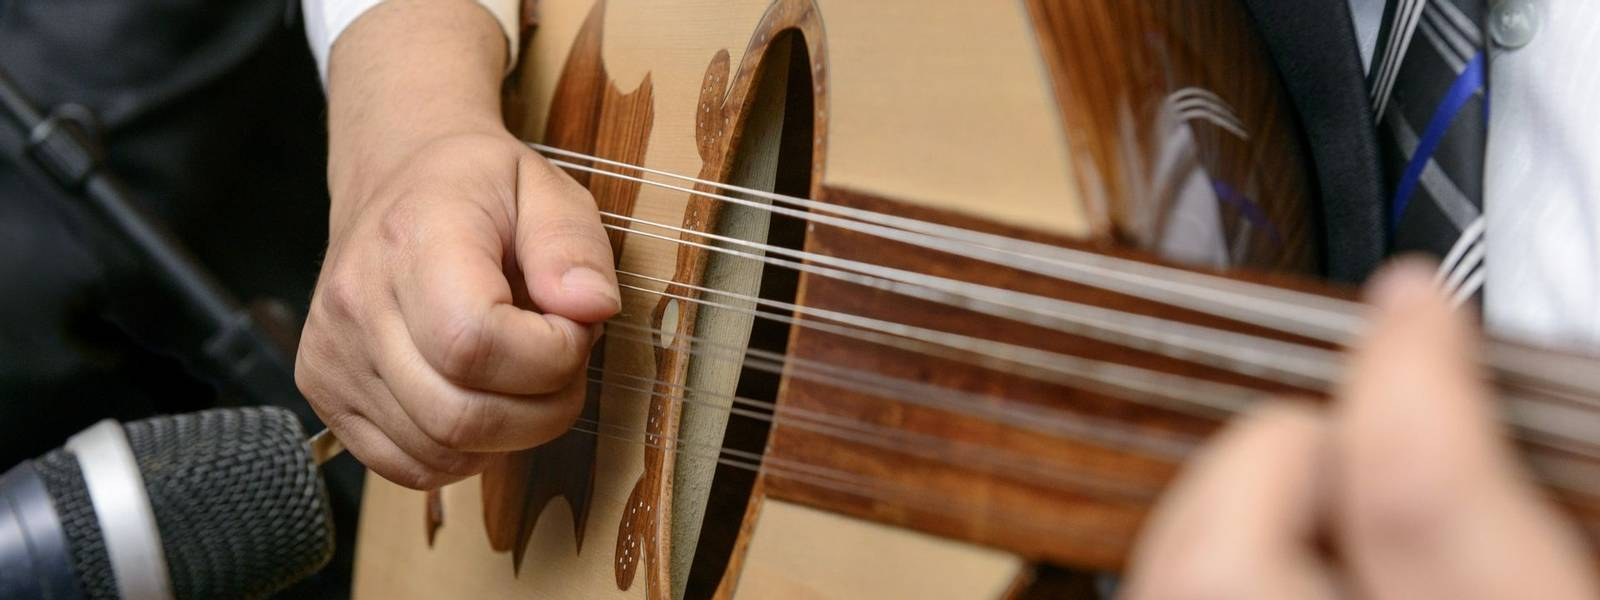 Musician Playing Note on Lute